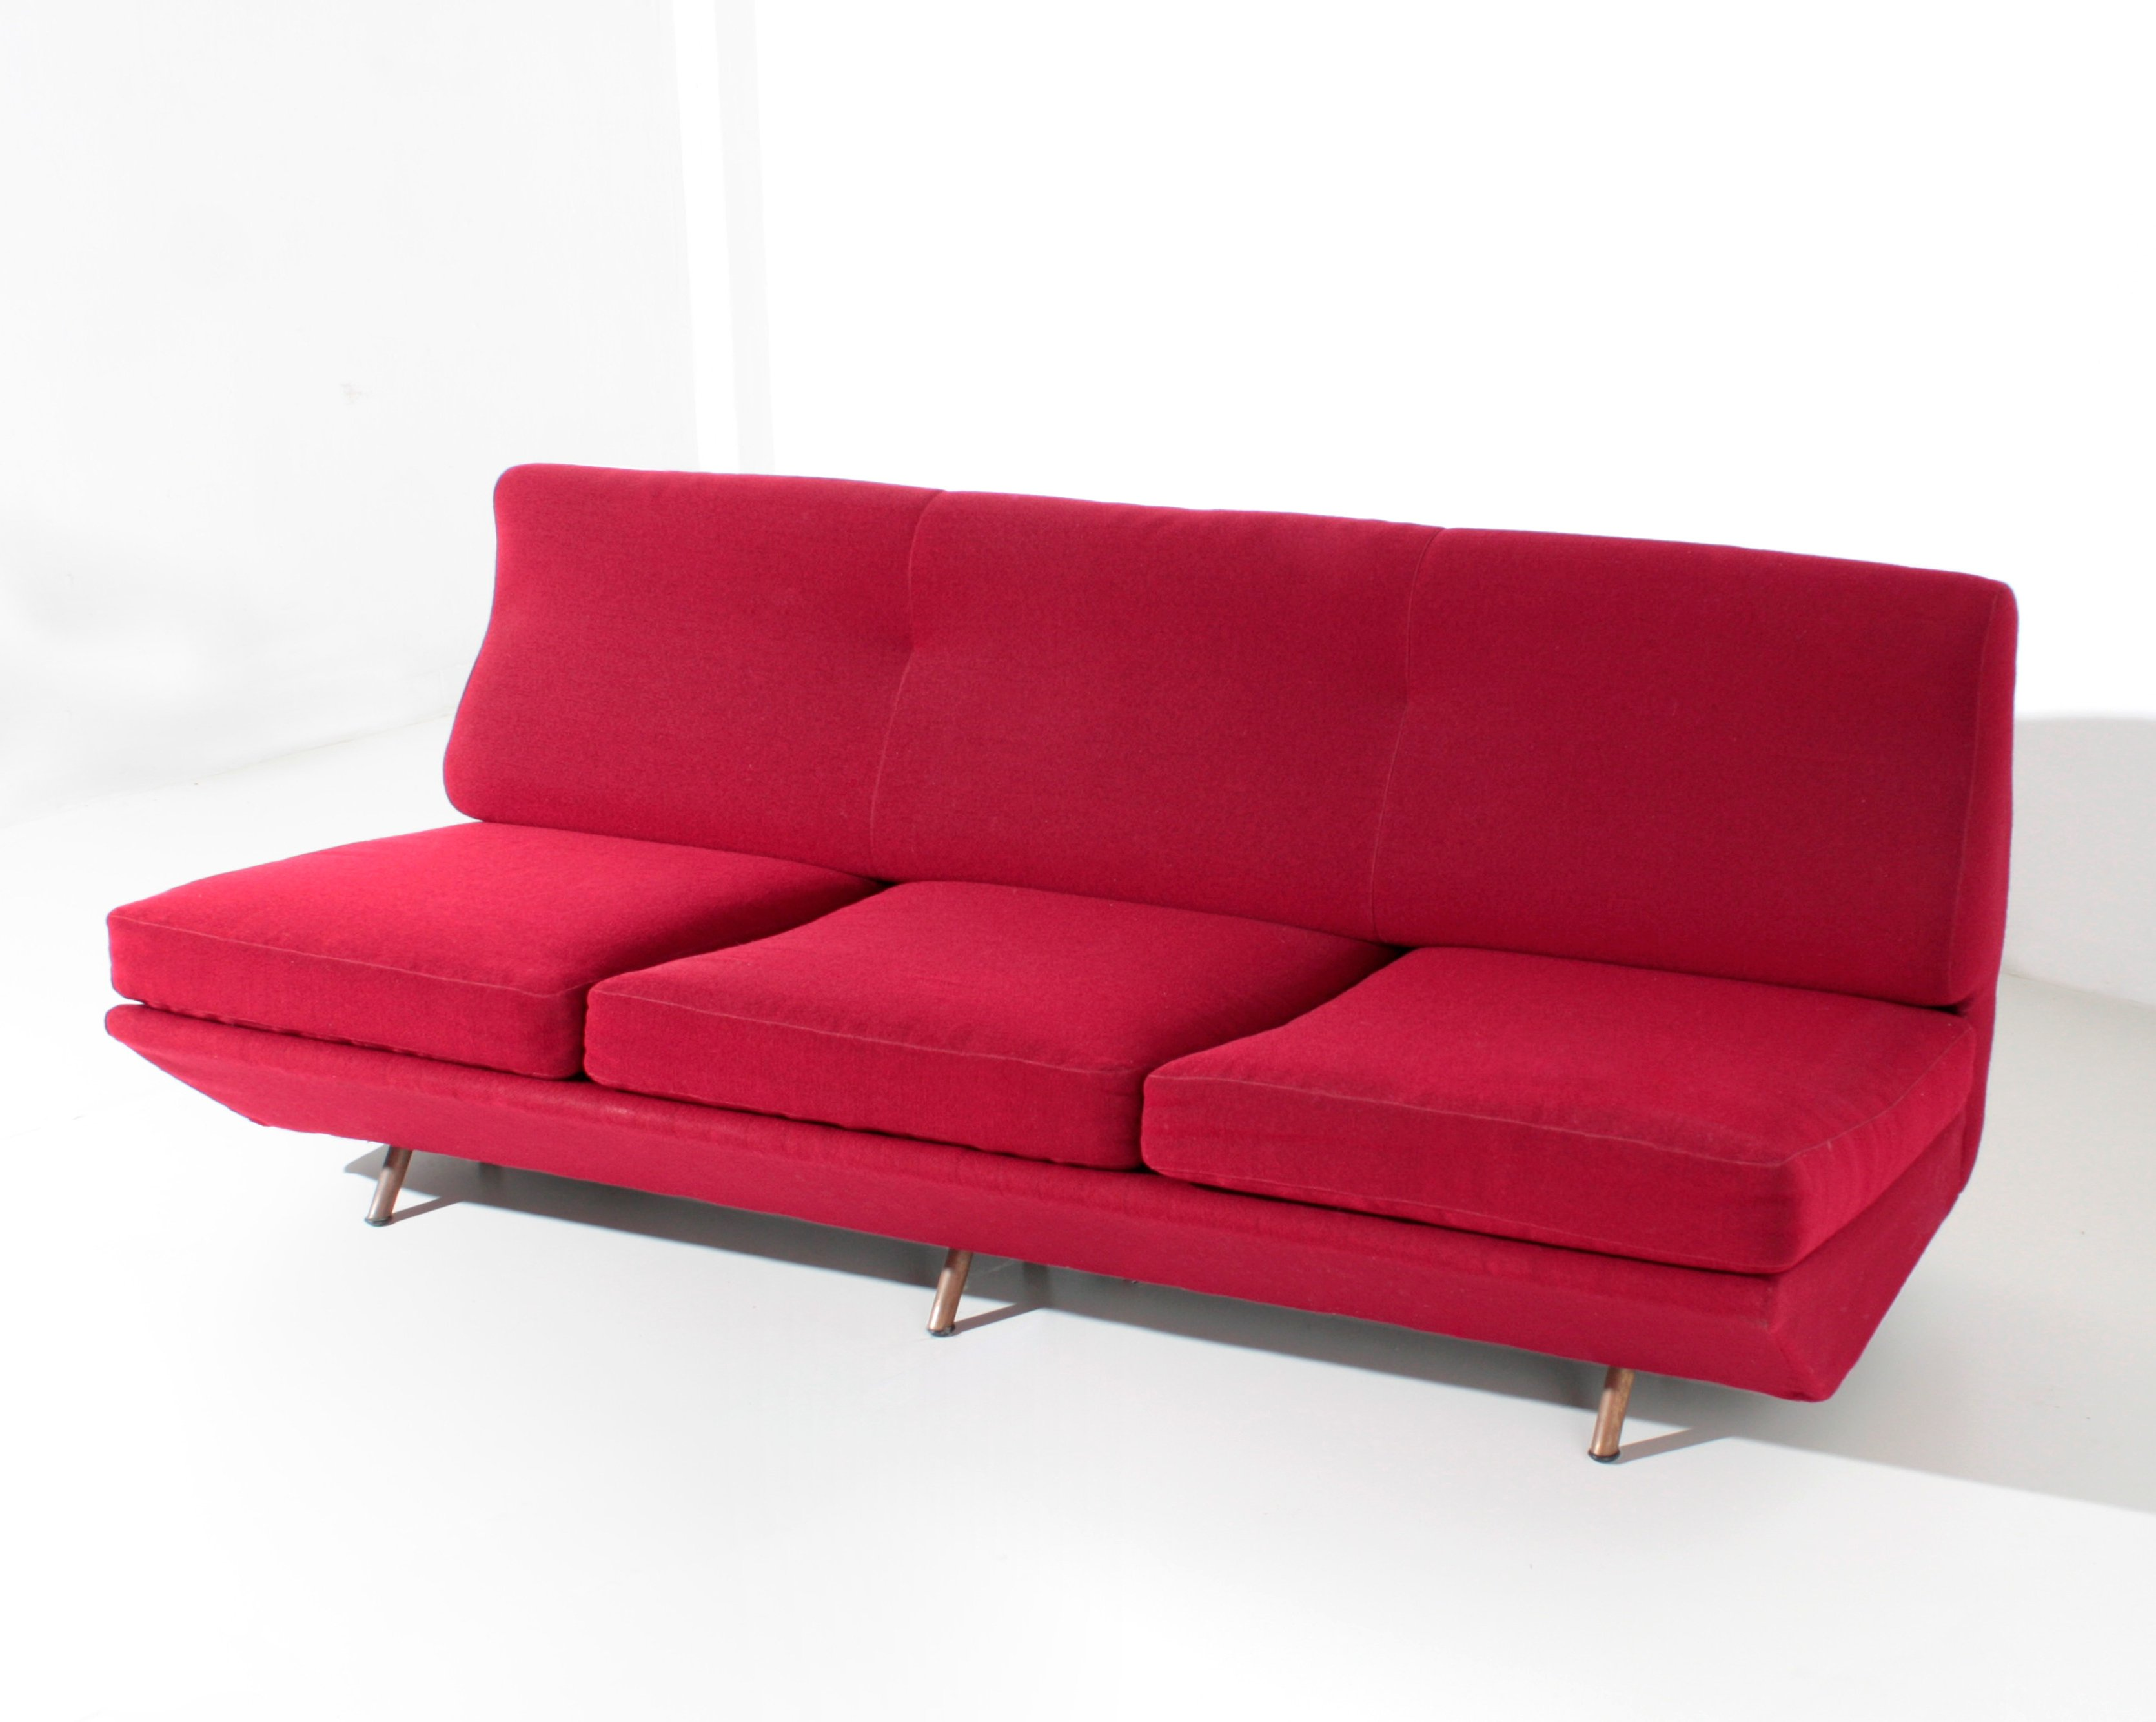 - Marco Zanuso Sleep-o-Matic MidCentury Sofa Bed In Red Fabric, 1954